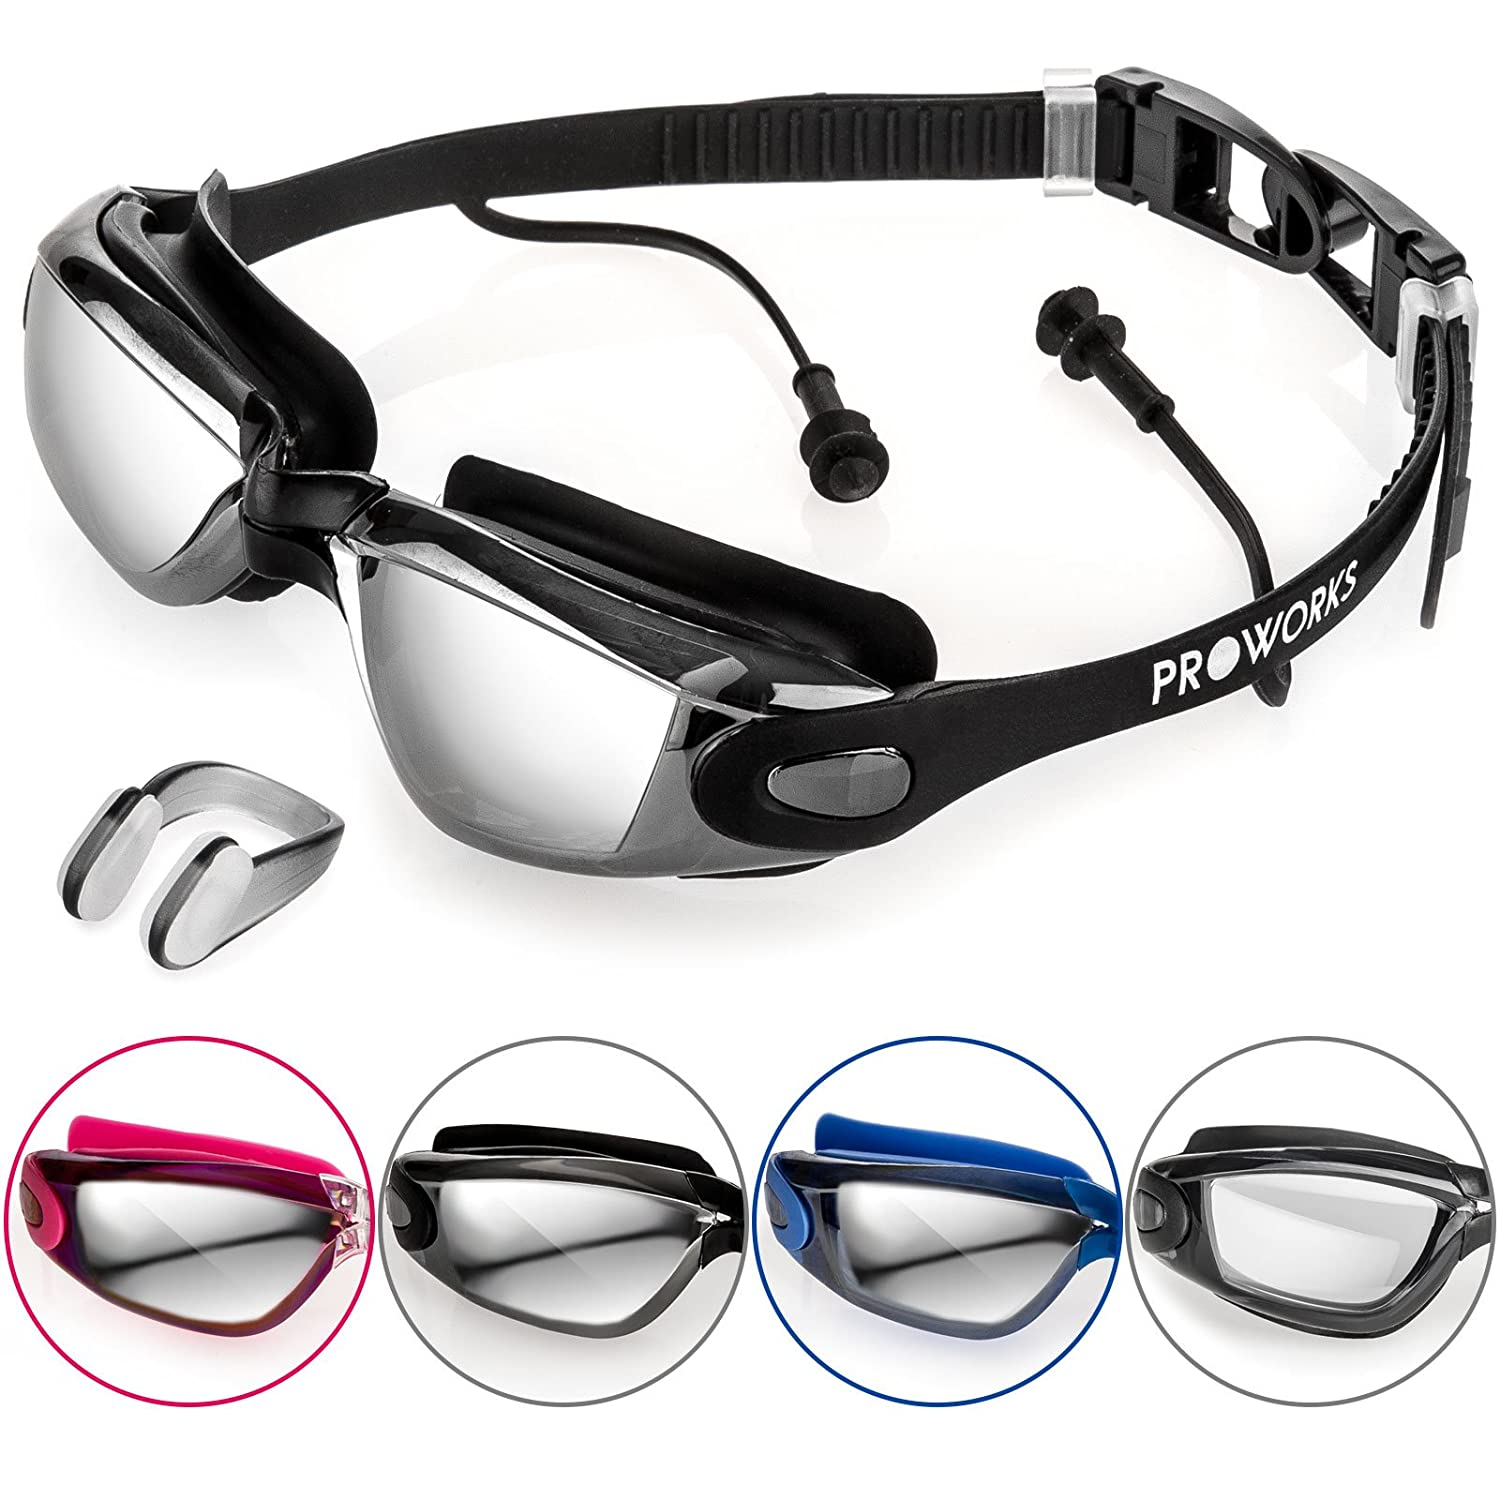 d5098989f4f Proworks Swimming Goggles with Mirrored Lenses